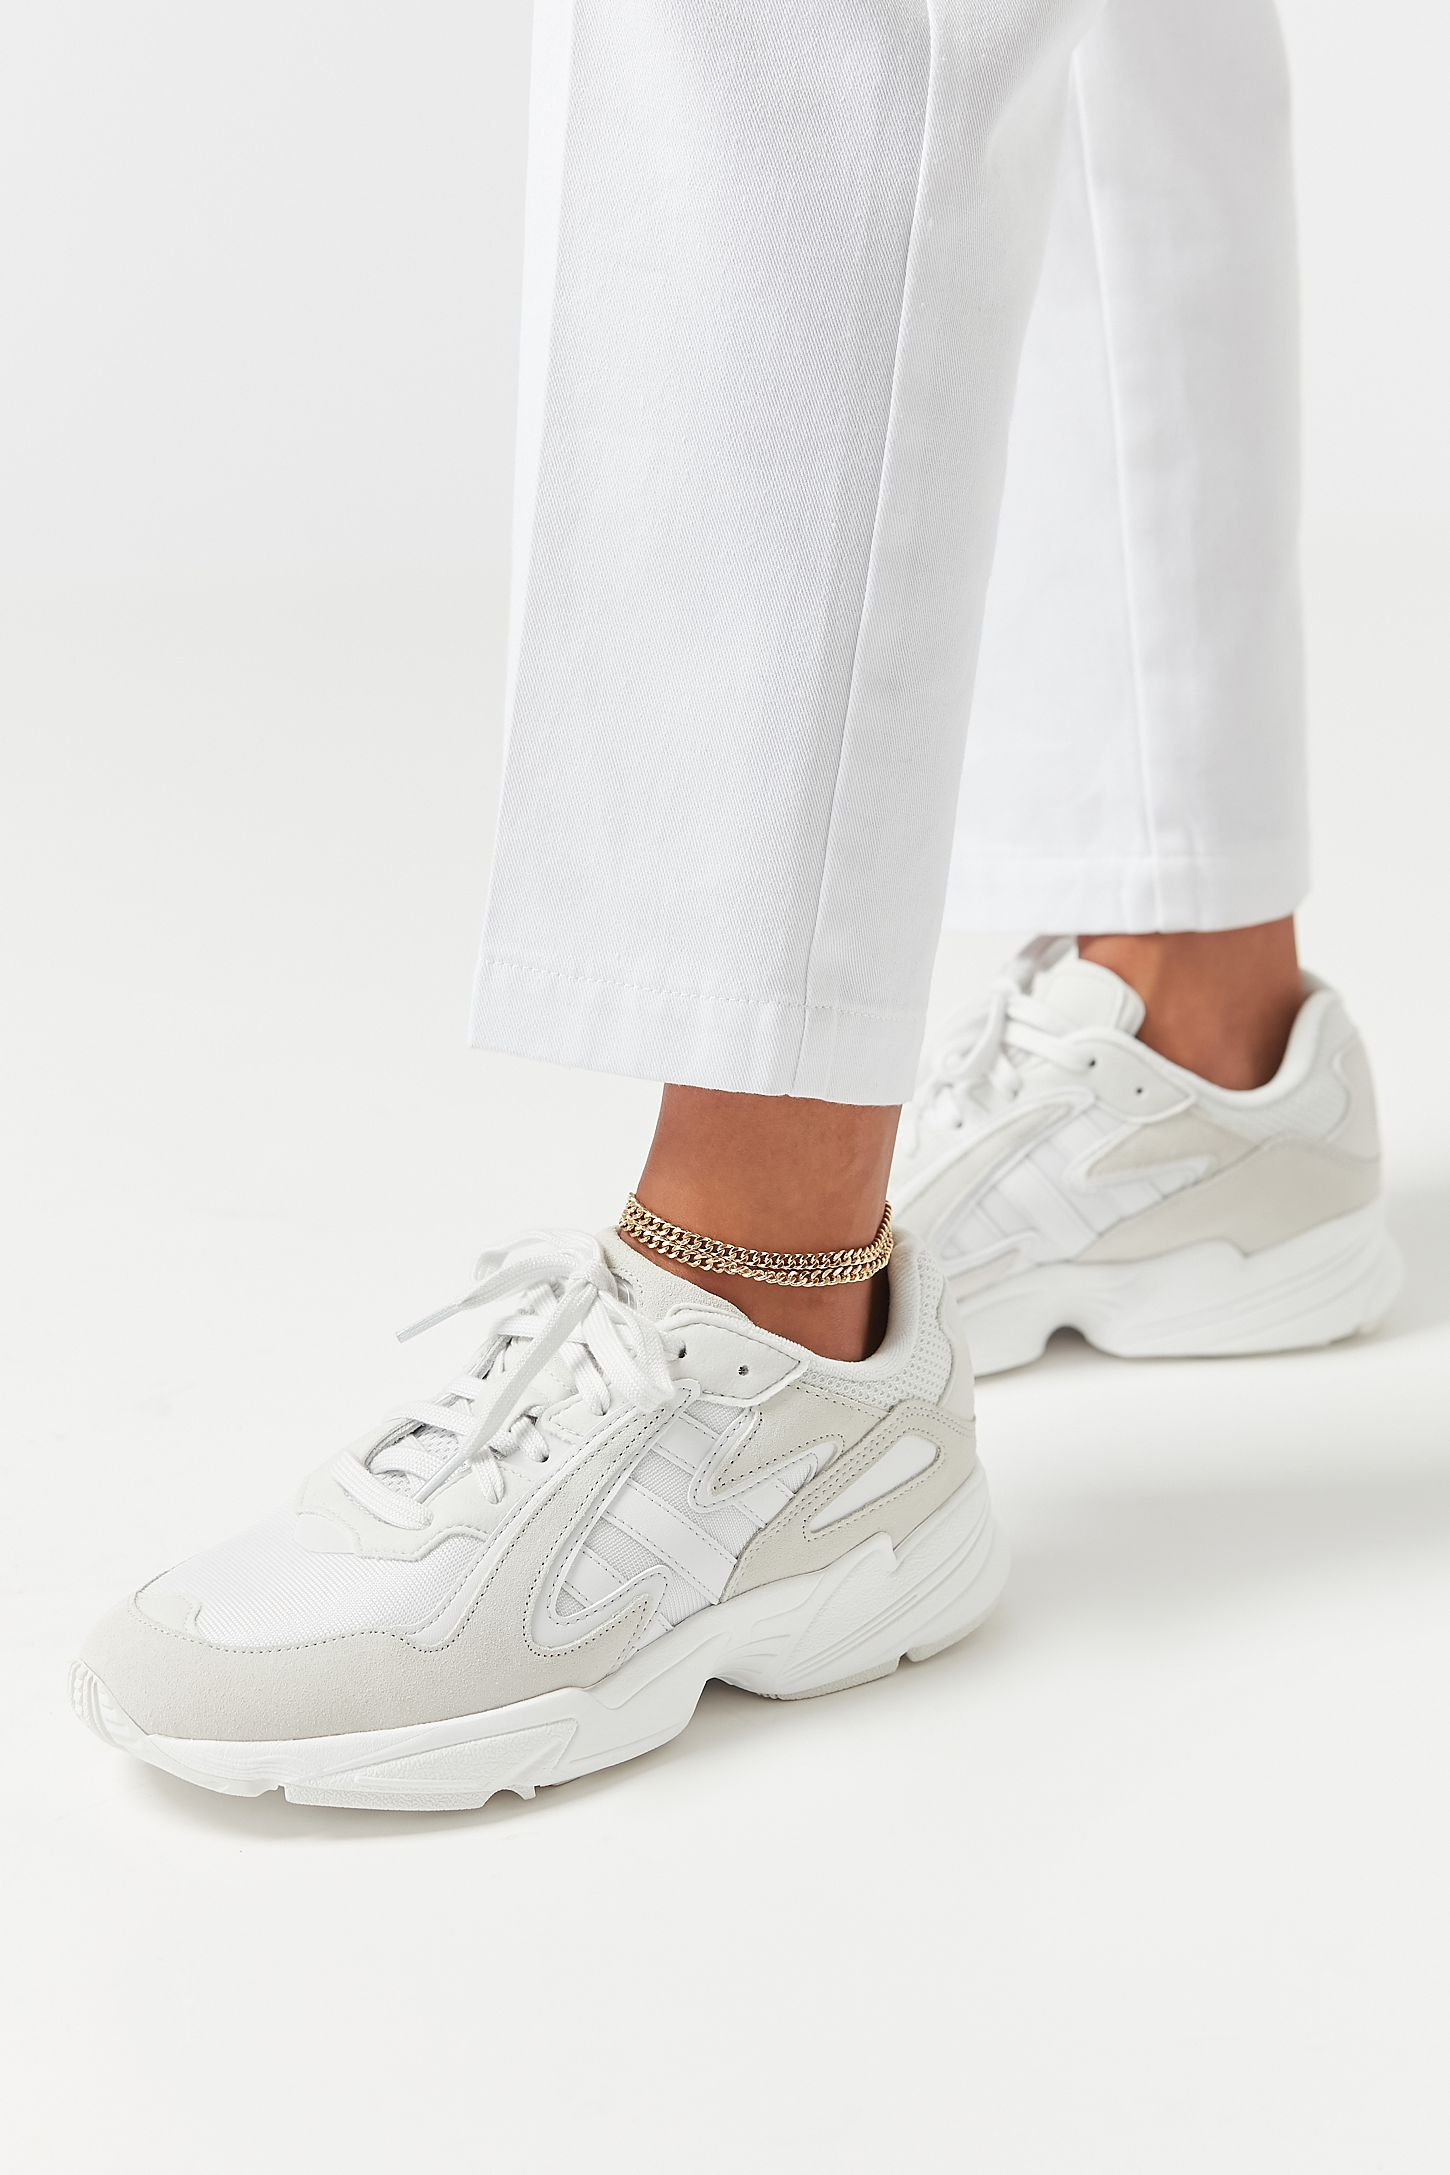 adidas Women's Shoes: Sandals, Sneakers + Boots Urban  Urban Outfitters